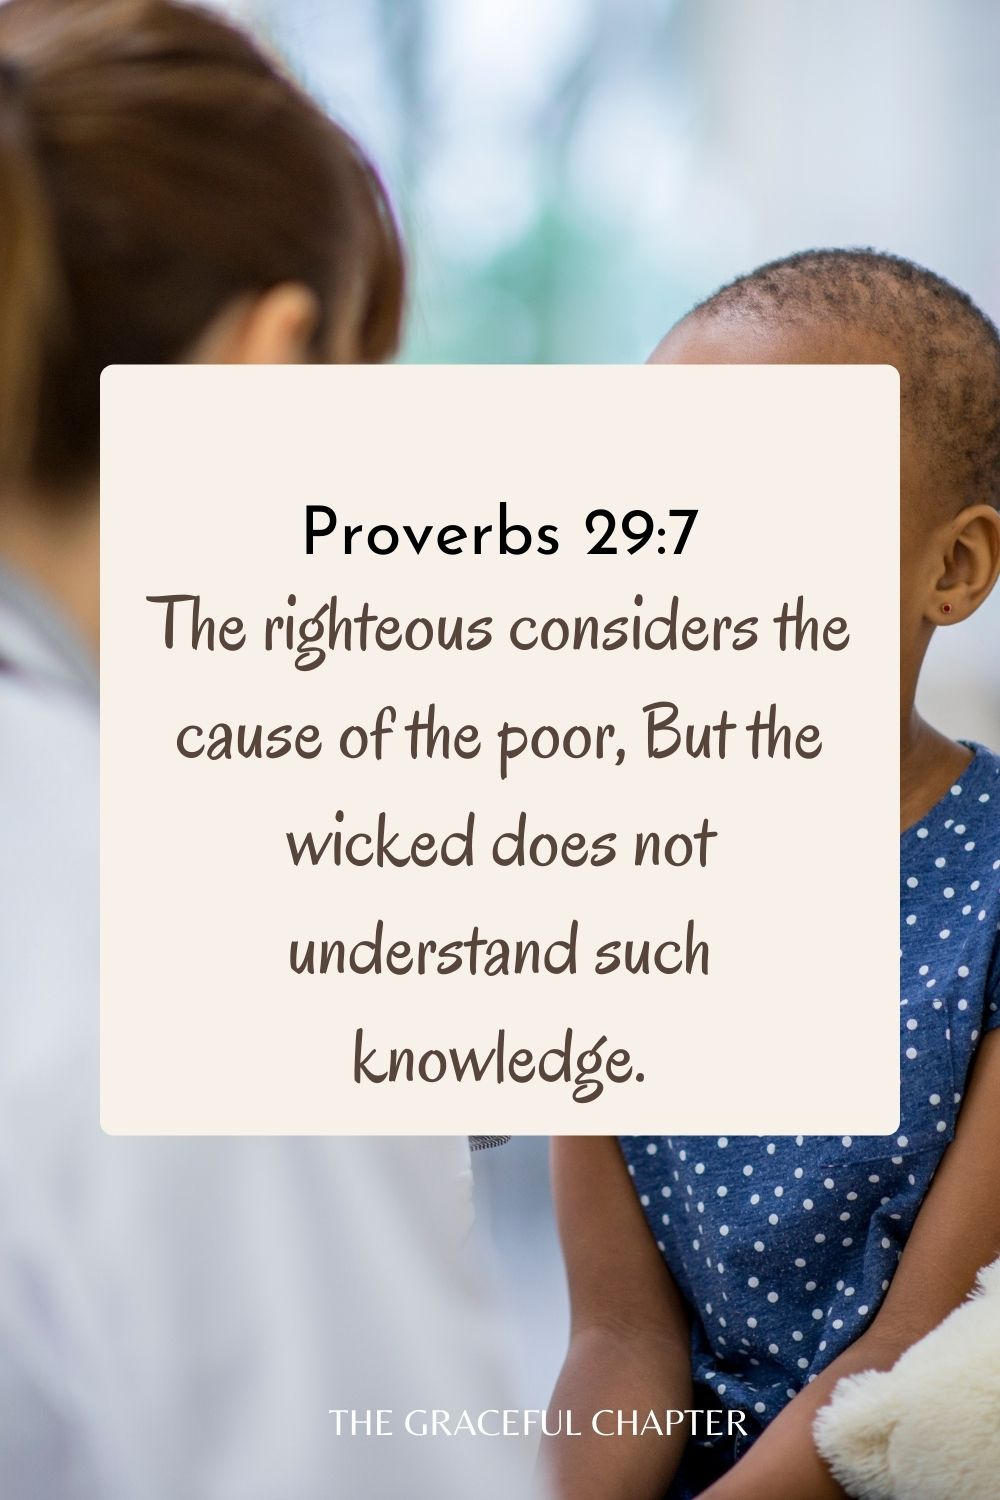 The righteous considers the cause of the poor, But the wicked does not understand such knowledge. Proverbs 29:7